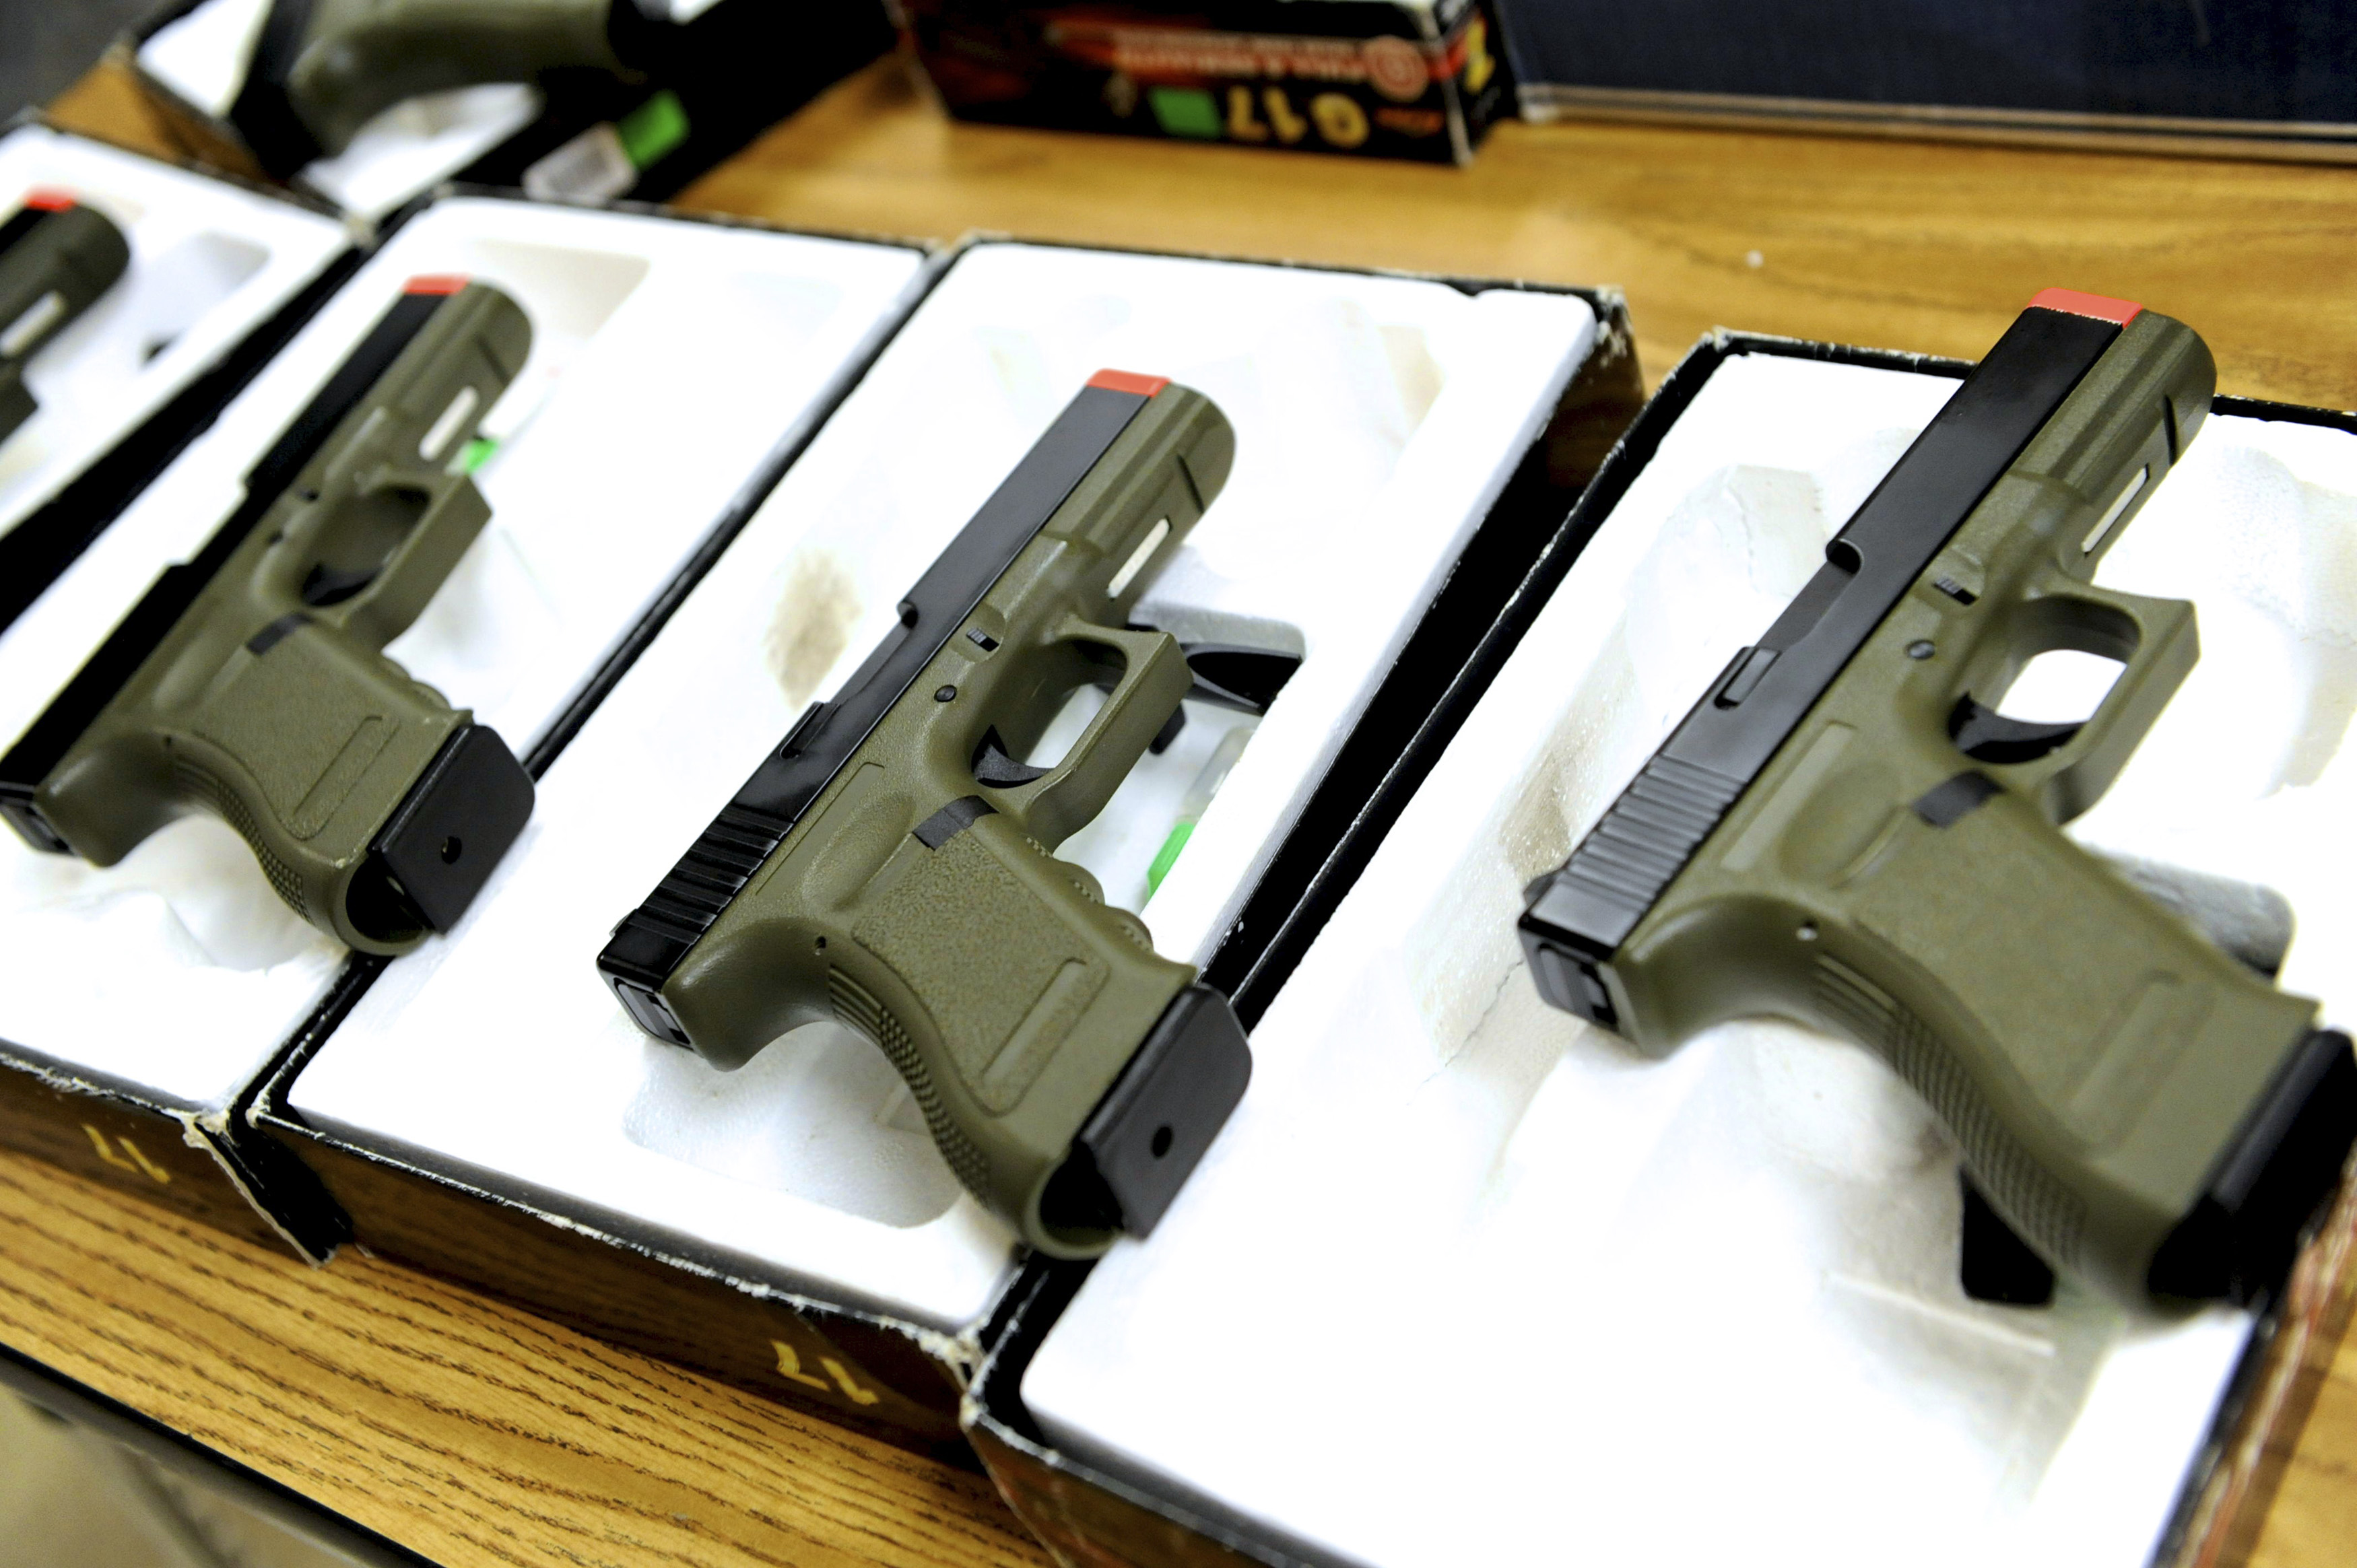 Glock 31 Gun: All You Need To Know About this Powerful Pistol